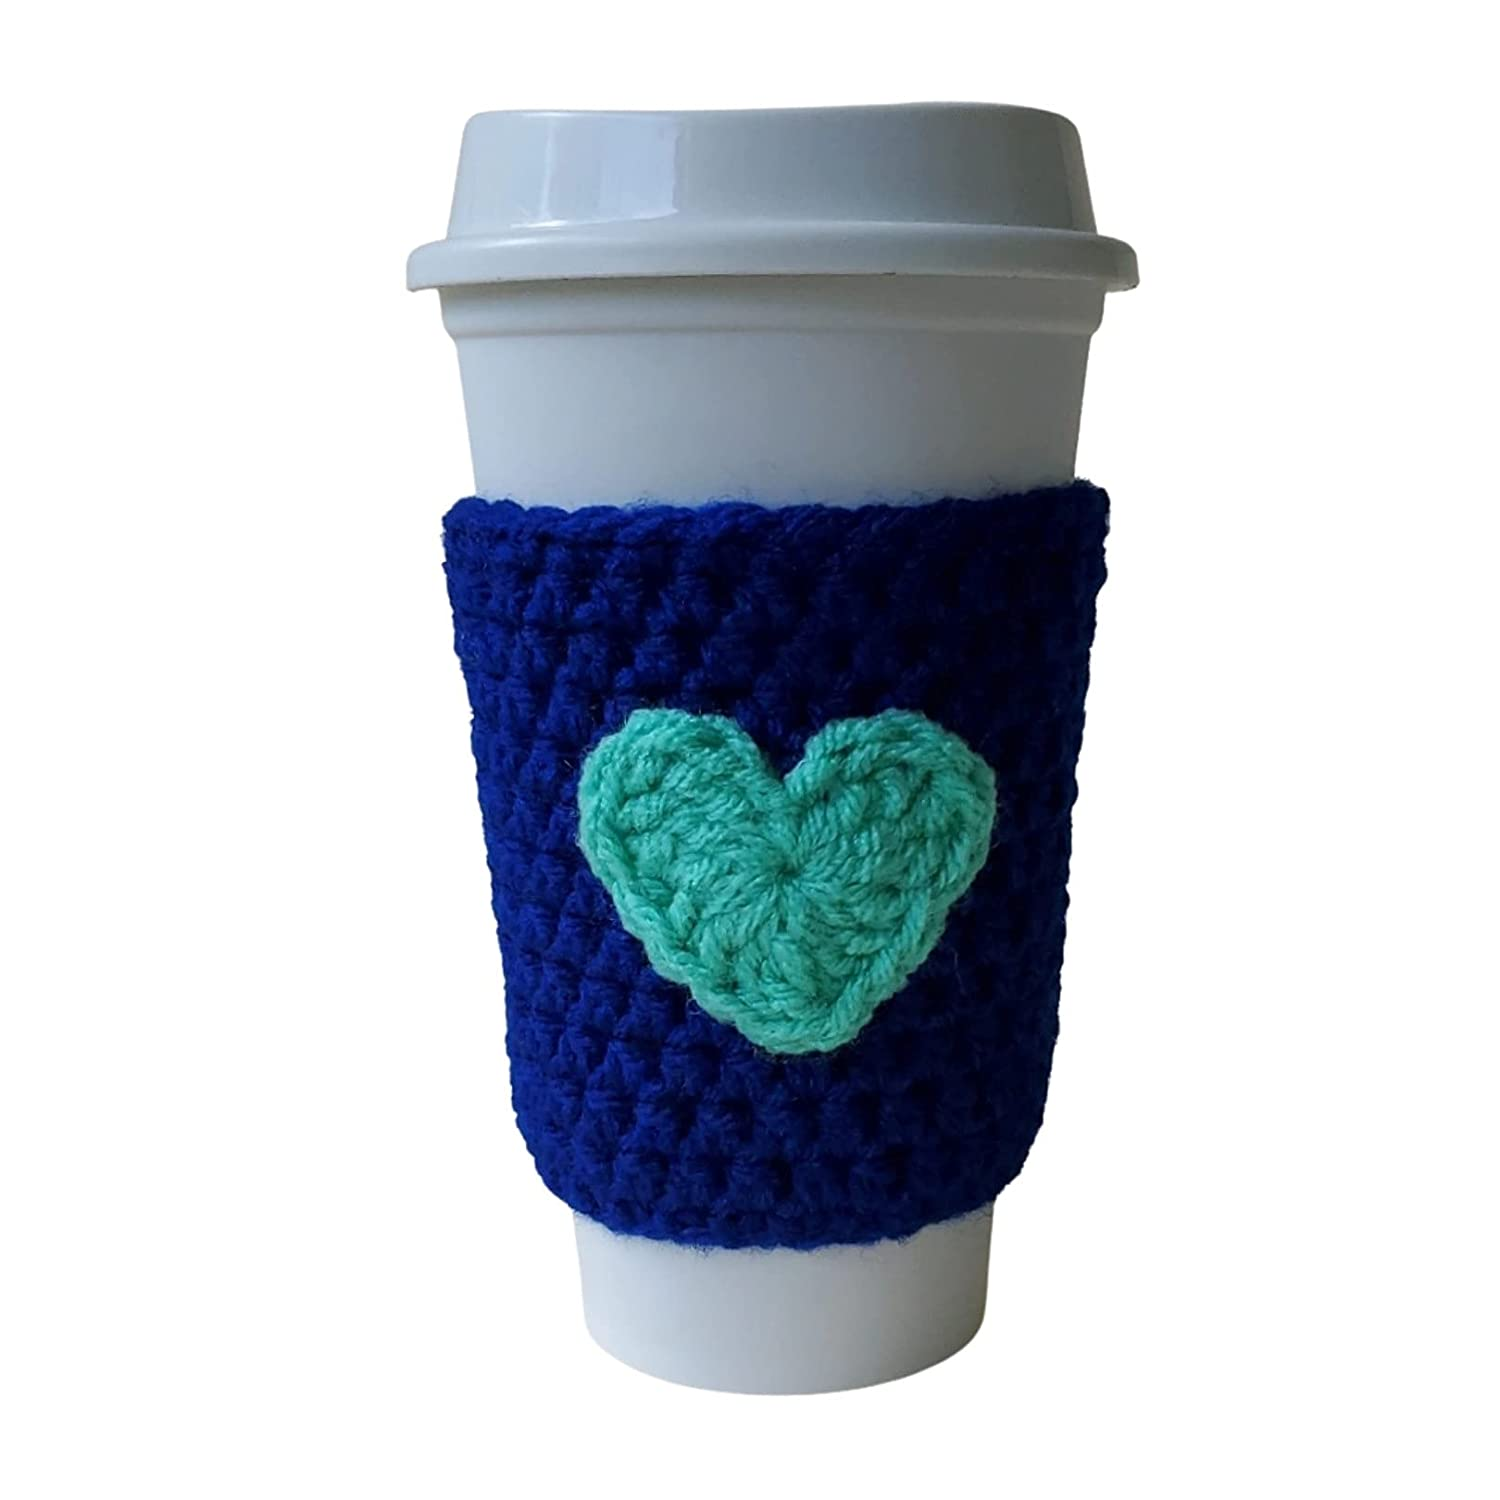 Reusable Coffee Cozy Sleeve Department store Royal Blue-Green Rapid rise Hea with Blue Wrap